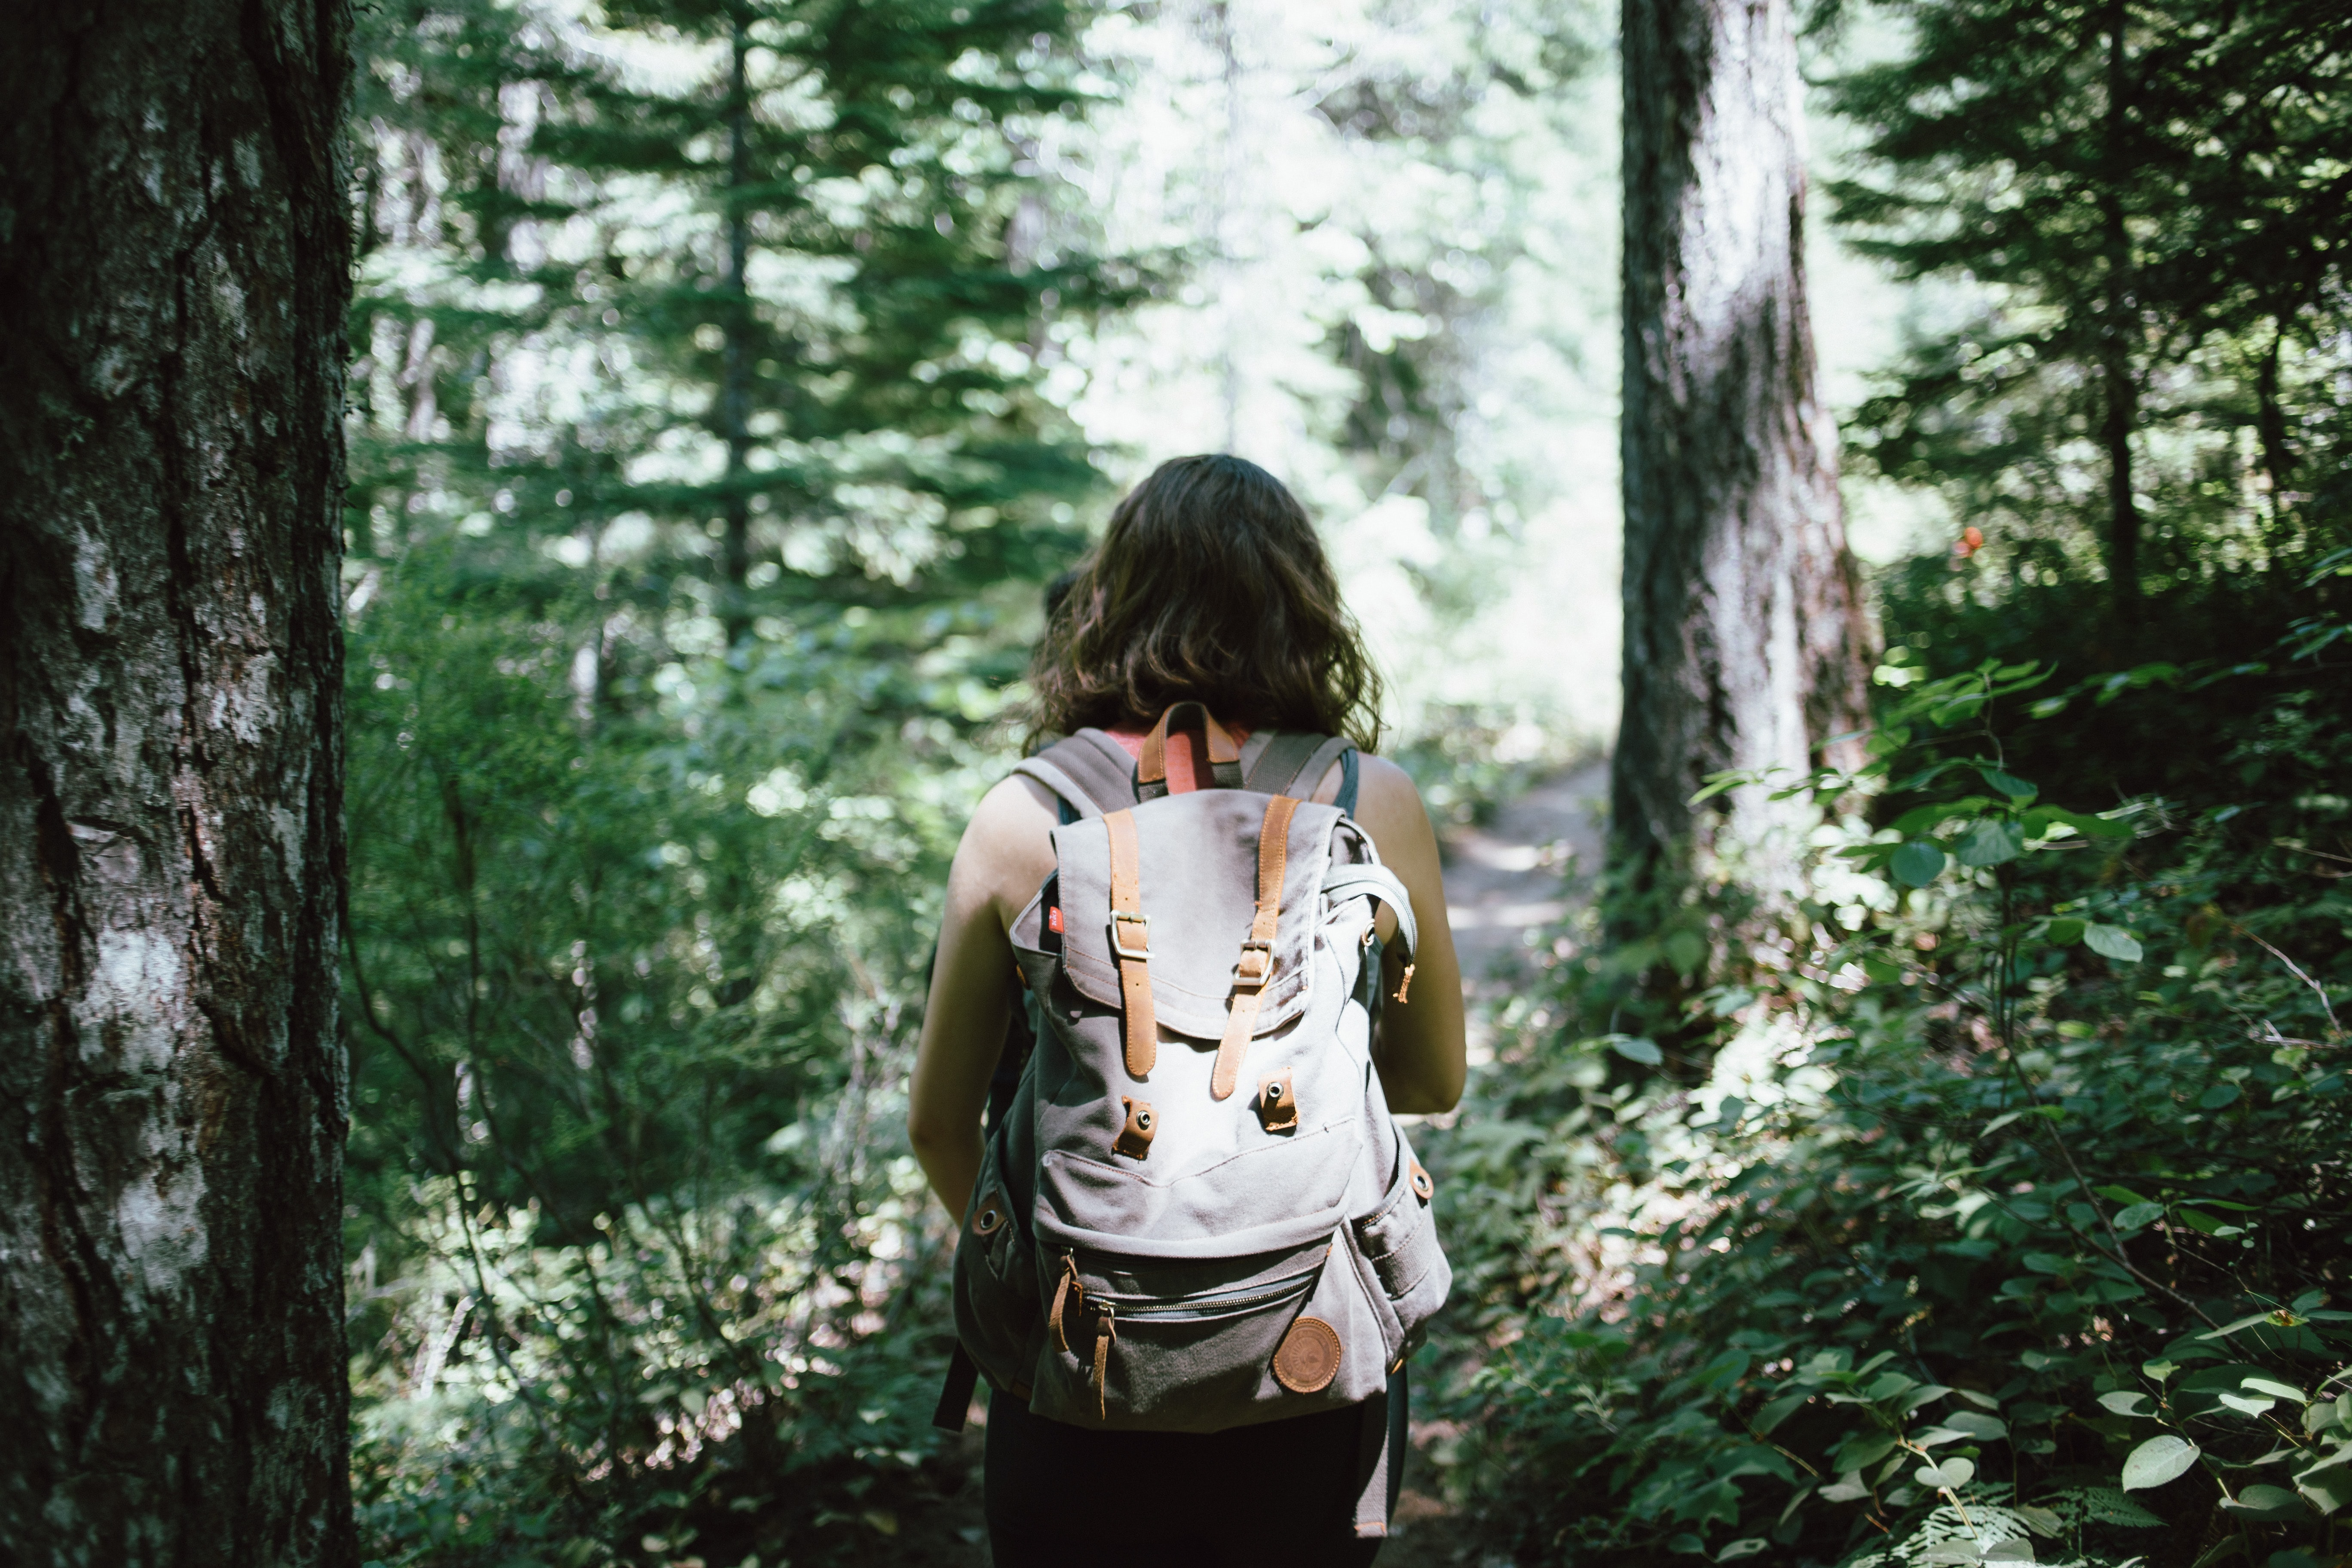 A woman with a large backpack walking through a forest